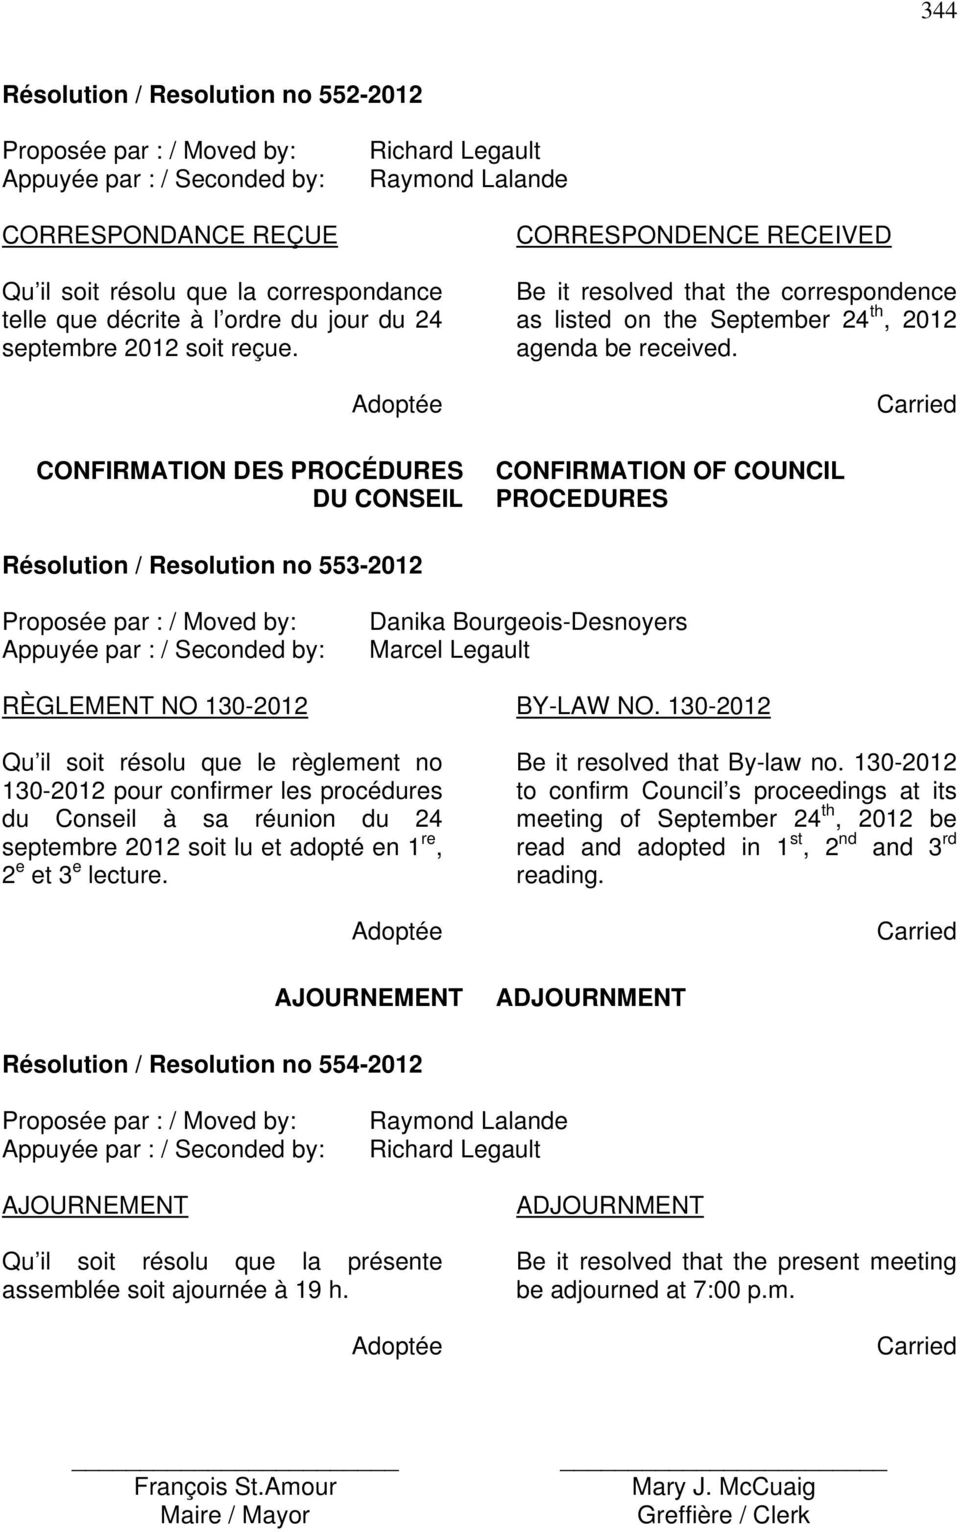 CONFIRMATION OF COUNCIL PROCEDURES Résolution / Resolution no 553-2012 RÈGLEMENT NO 130-2012 BY-LAW NO.